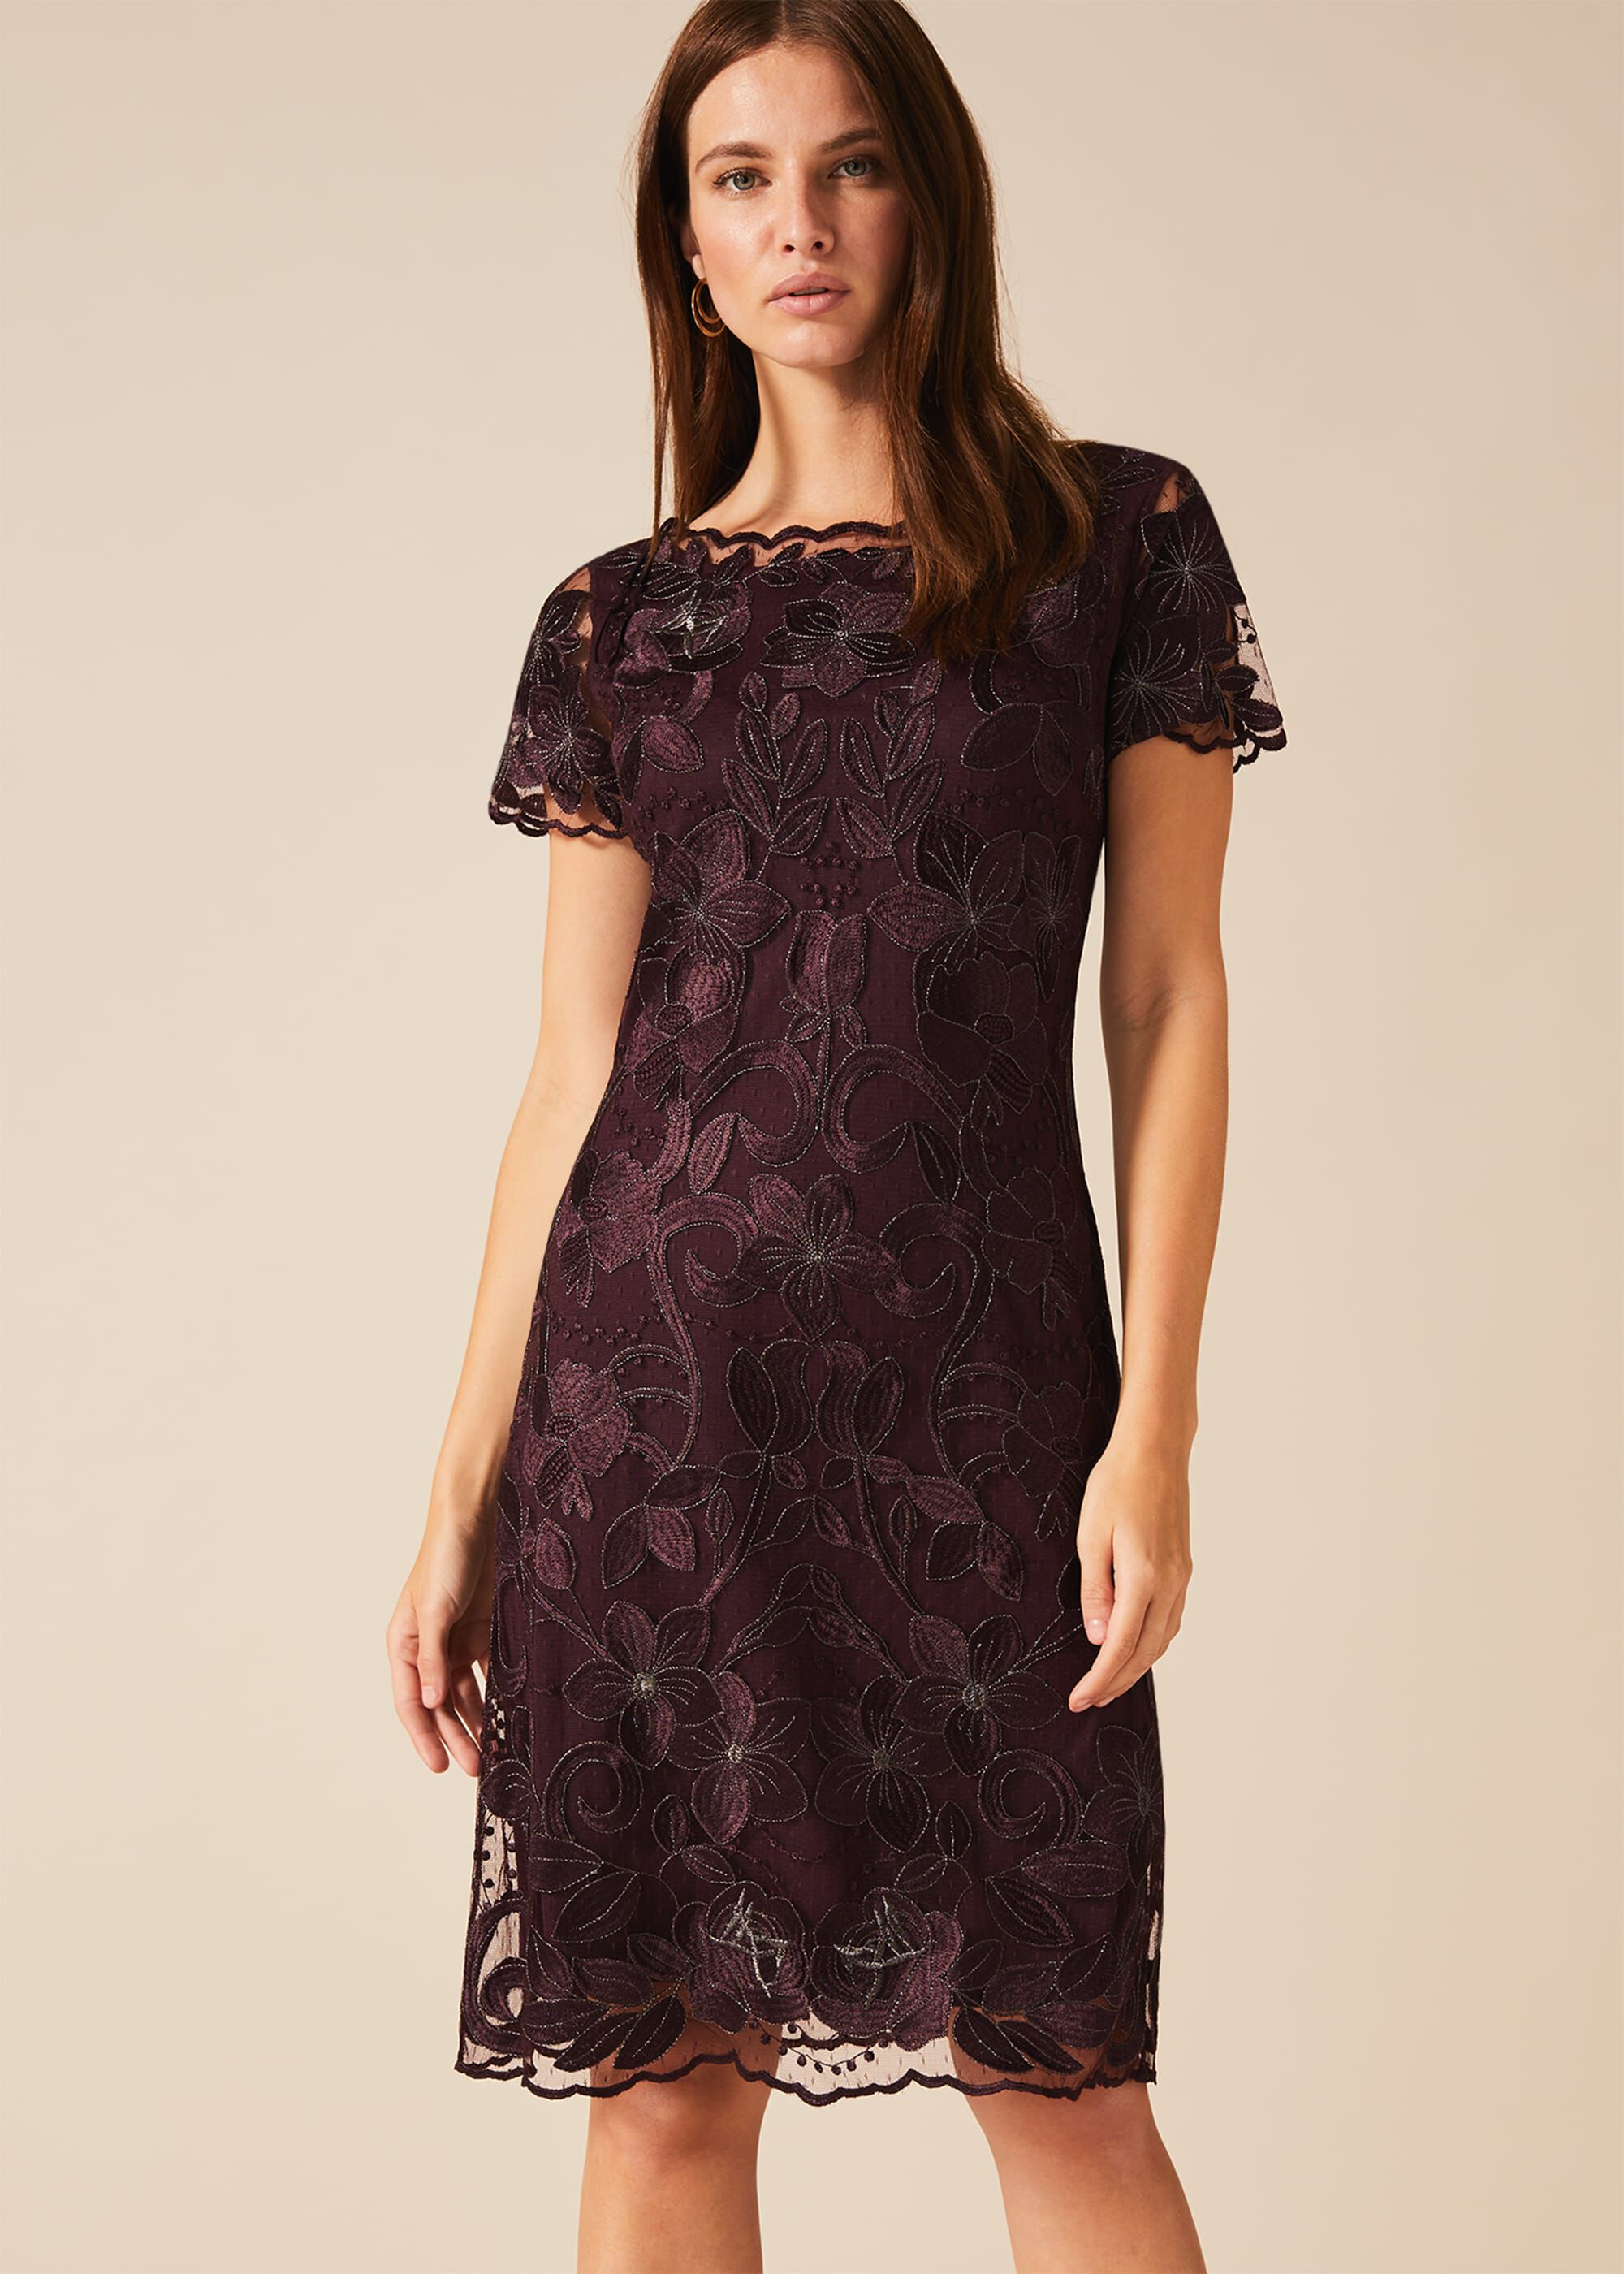 Phase Eight Nessa Embroidered Dress, Purple, Shift, Occasion Dress